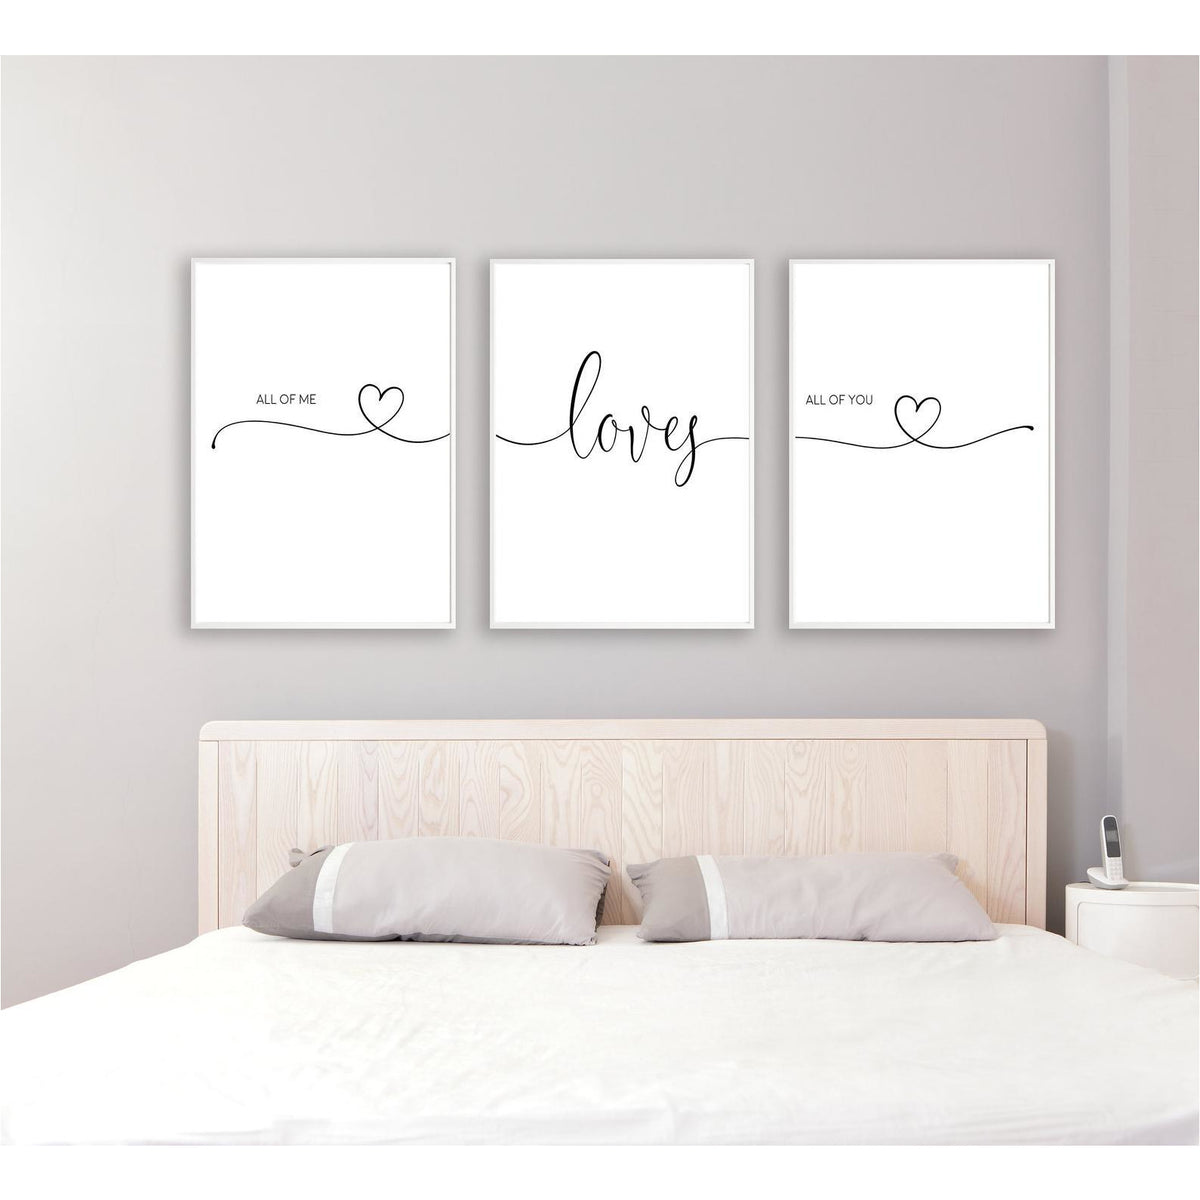 All of Me Loves All of You freeshipping - Beautiful Spaces Store